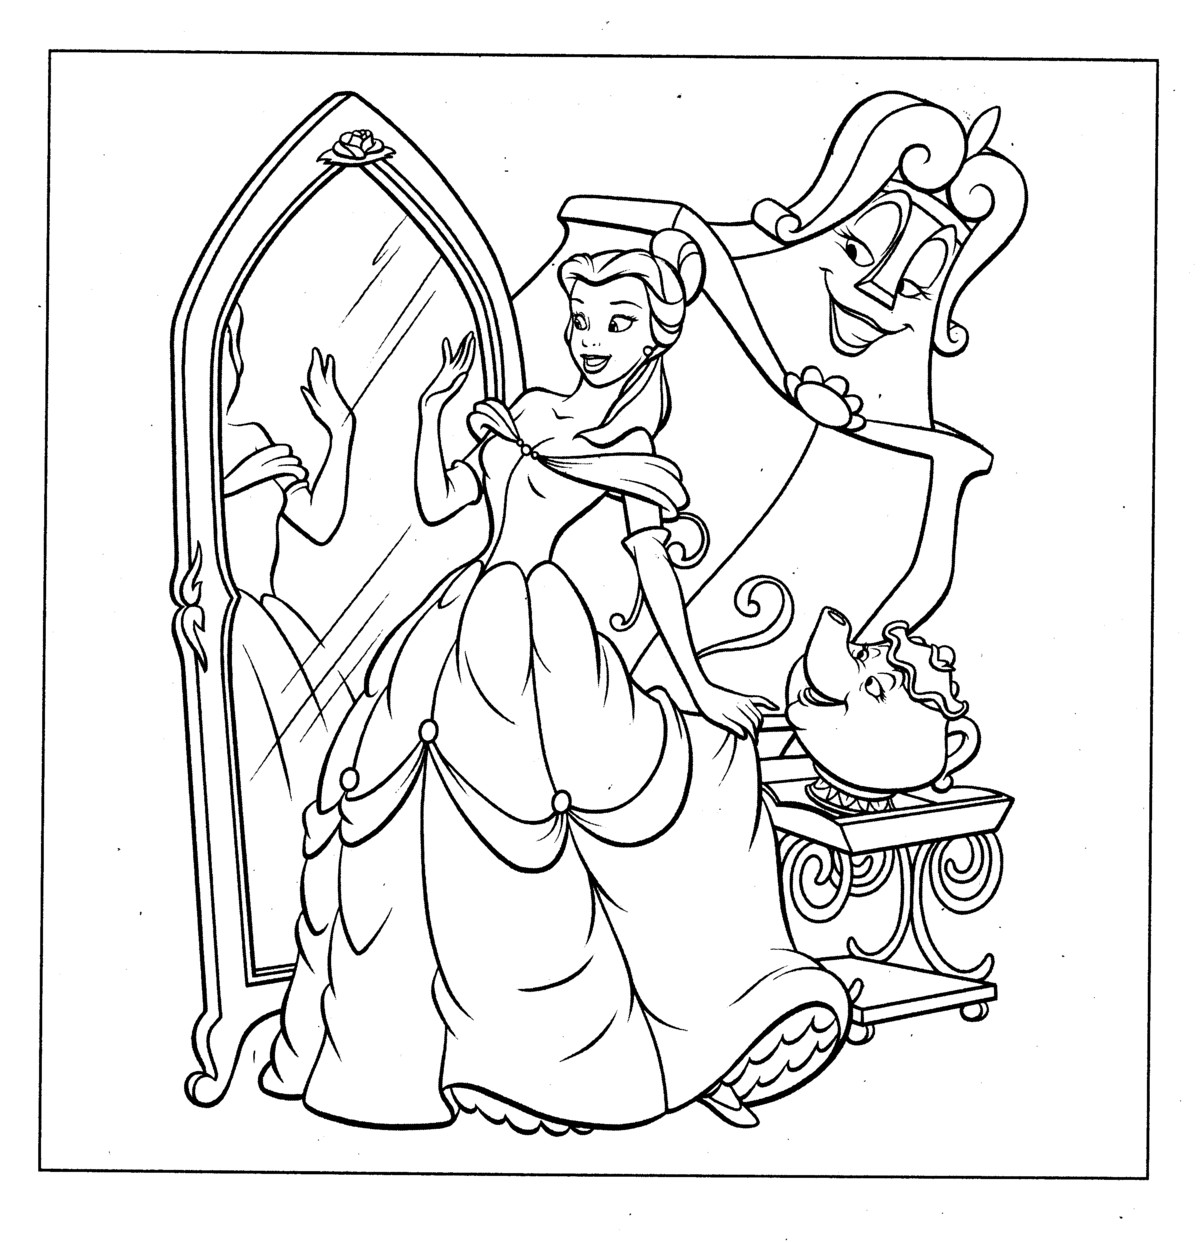 Disney Princess Belle Coloring Pages To Kids   free printable coloring pages disney princesses